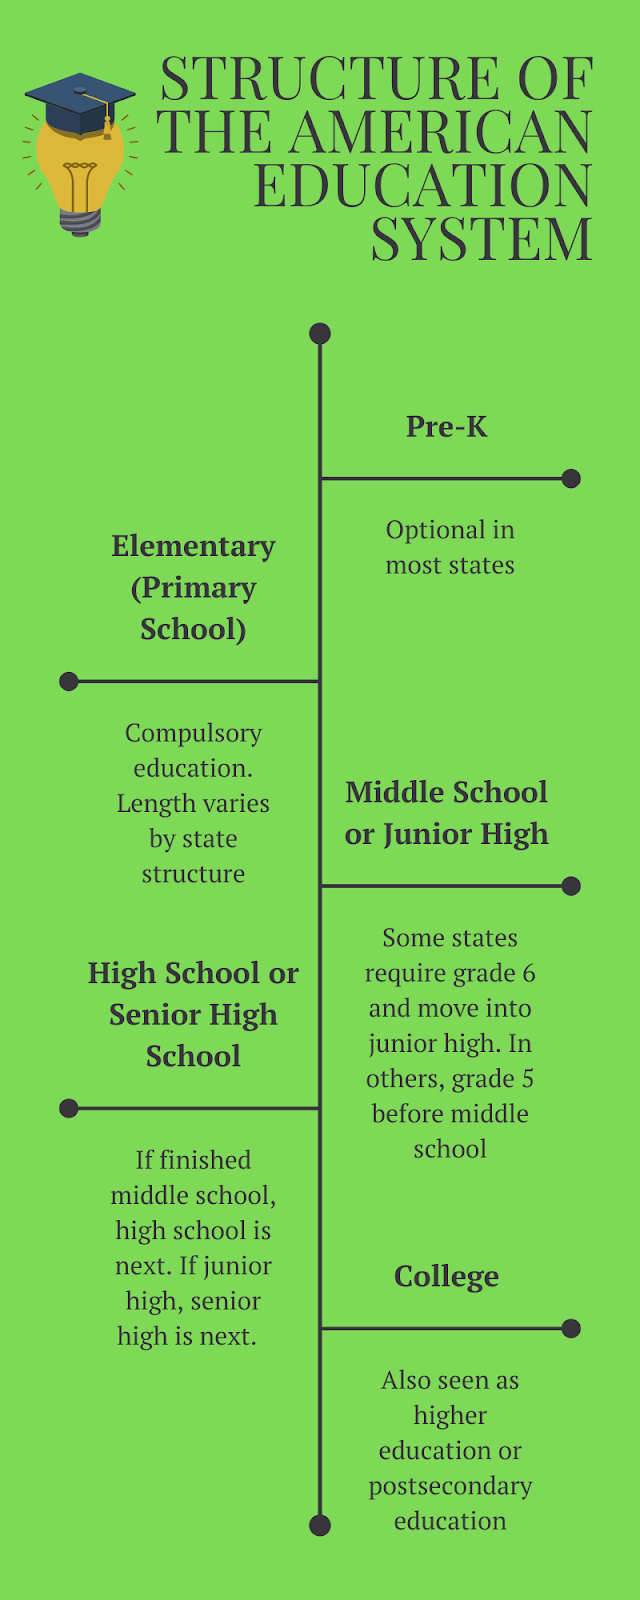 The structure of the American Education System